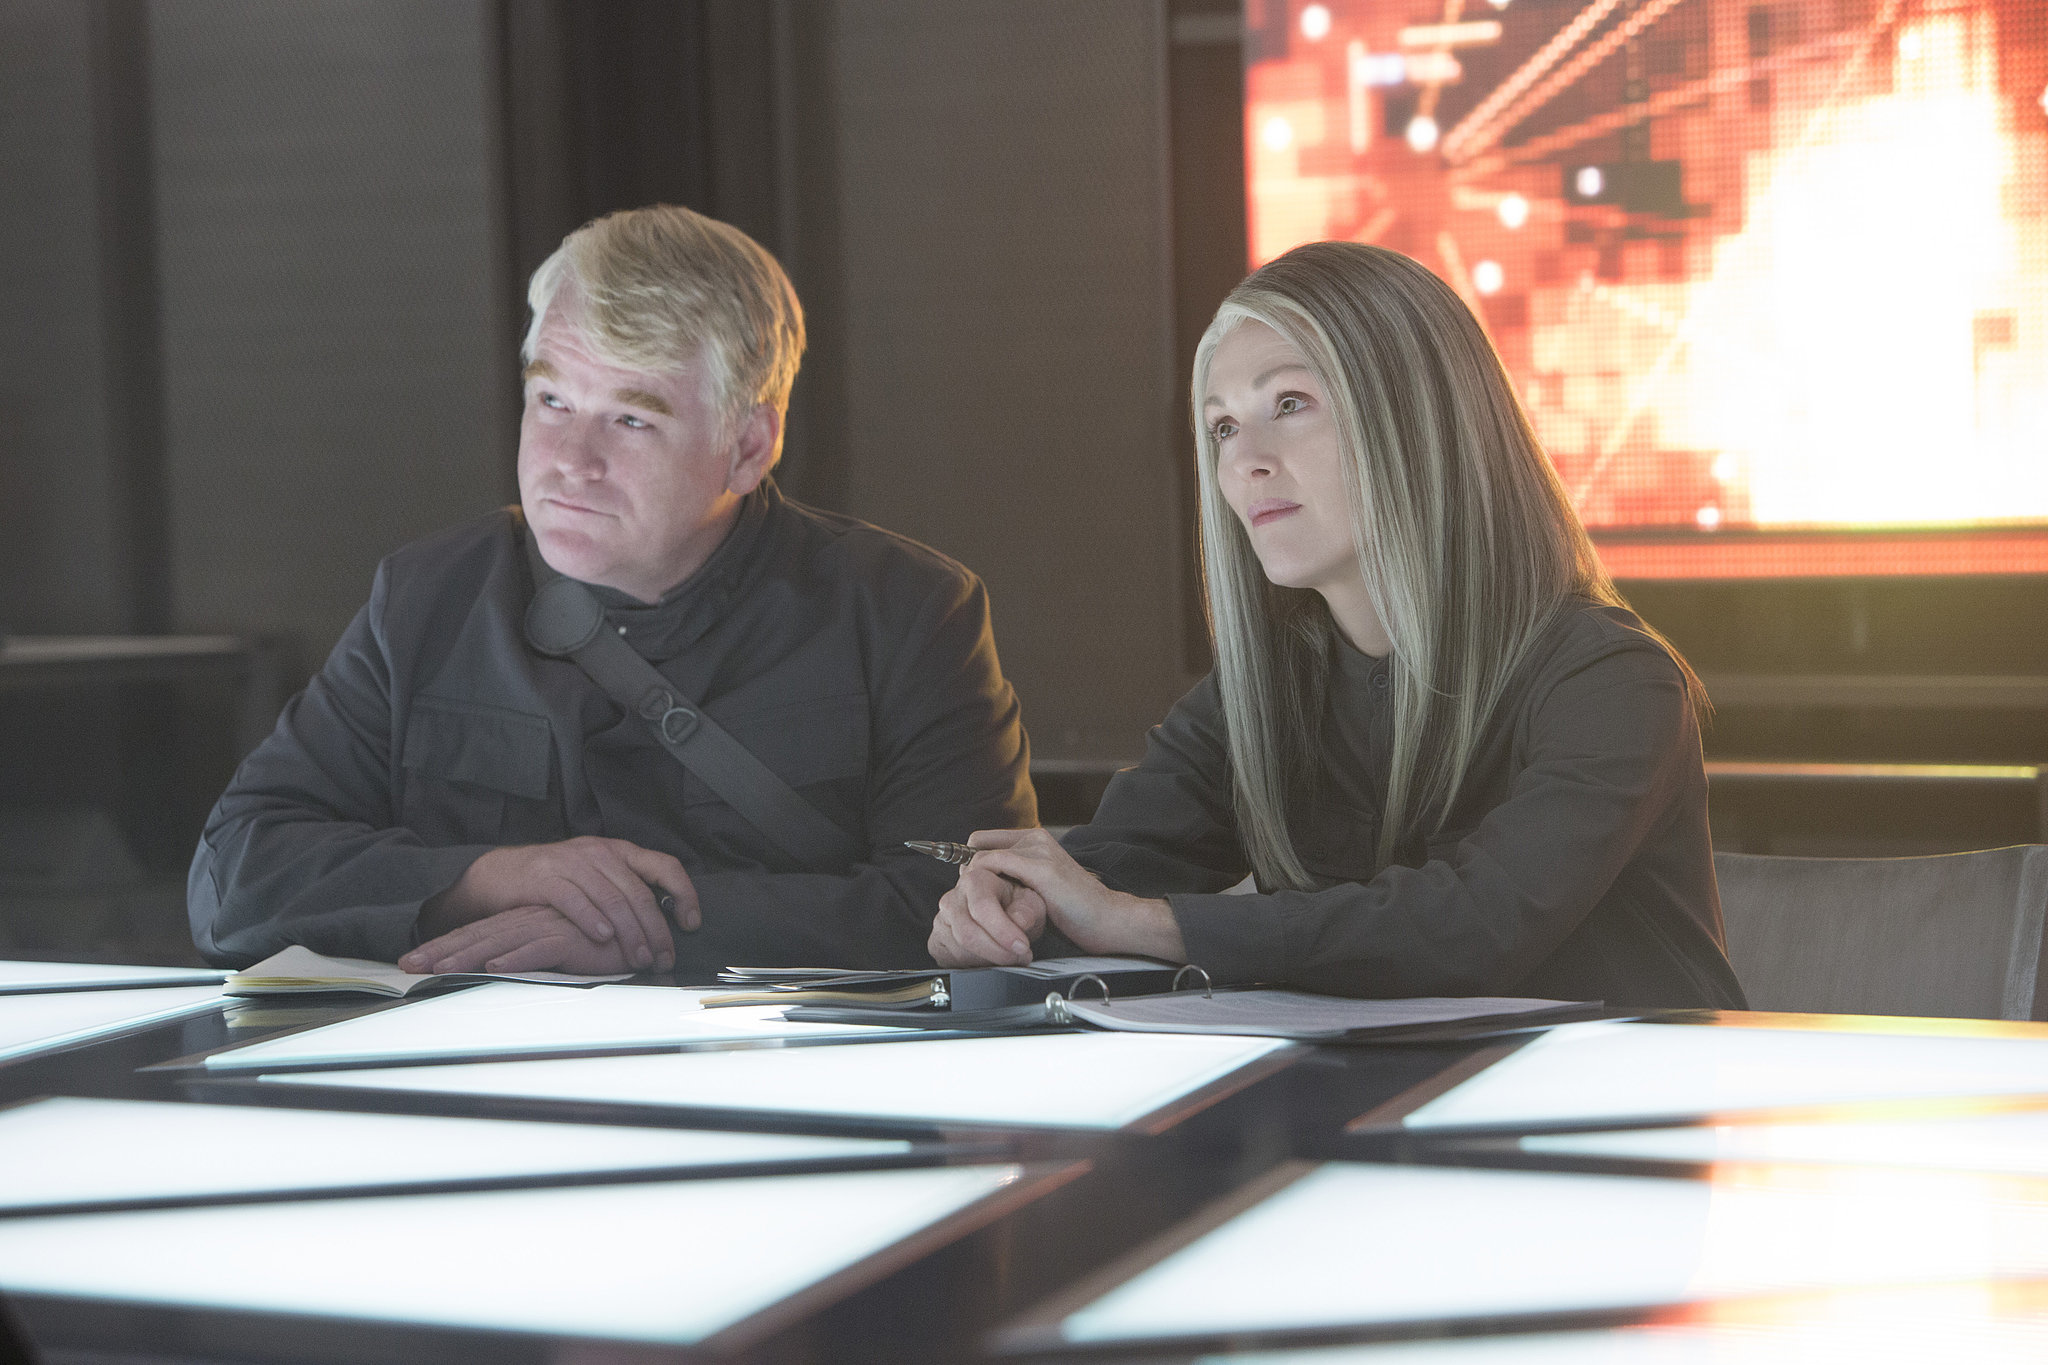 Philip Seymour Hoffman as Plutarch Heavensbee and Moore.